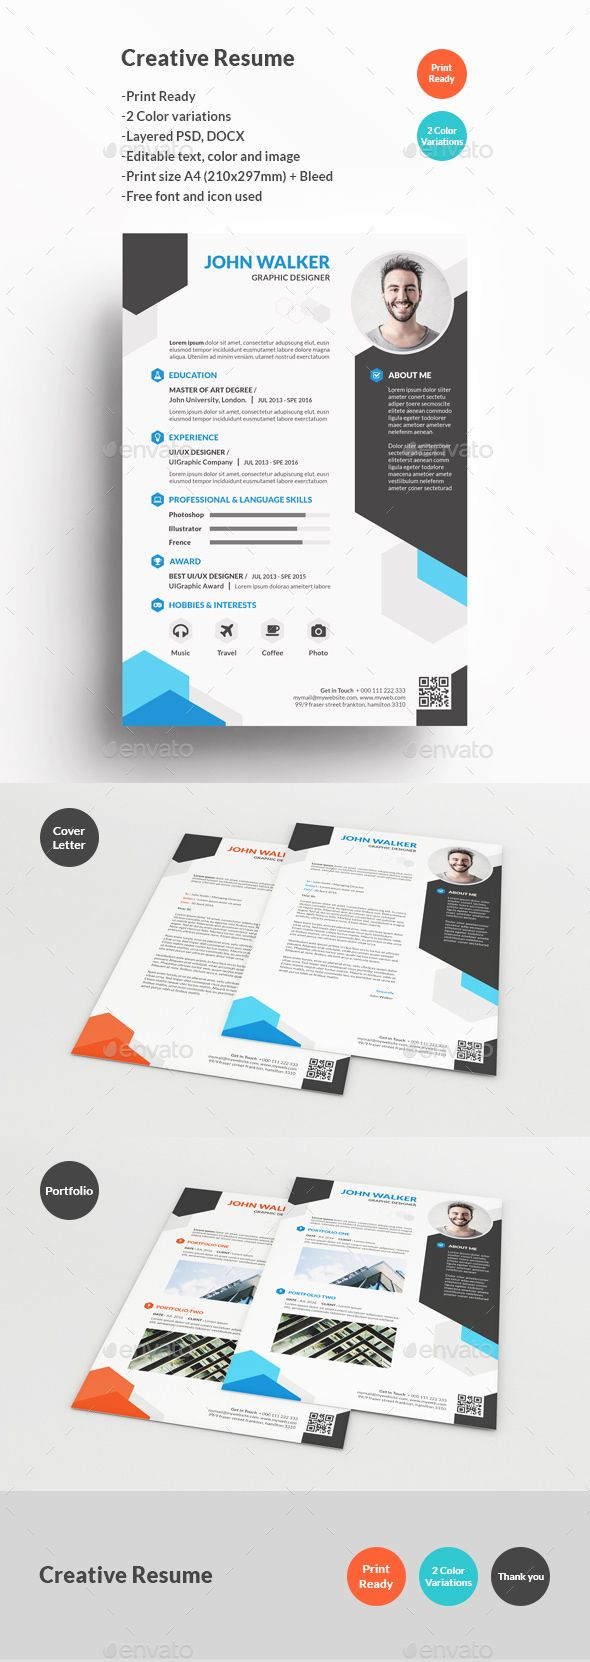 292 best designs images on Pinterest | Resume templates, Cv template ...